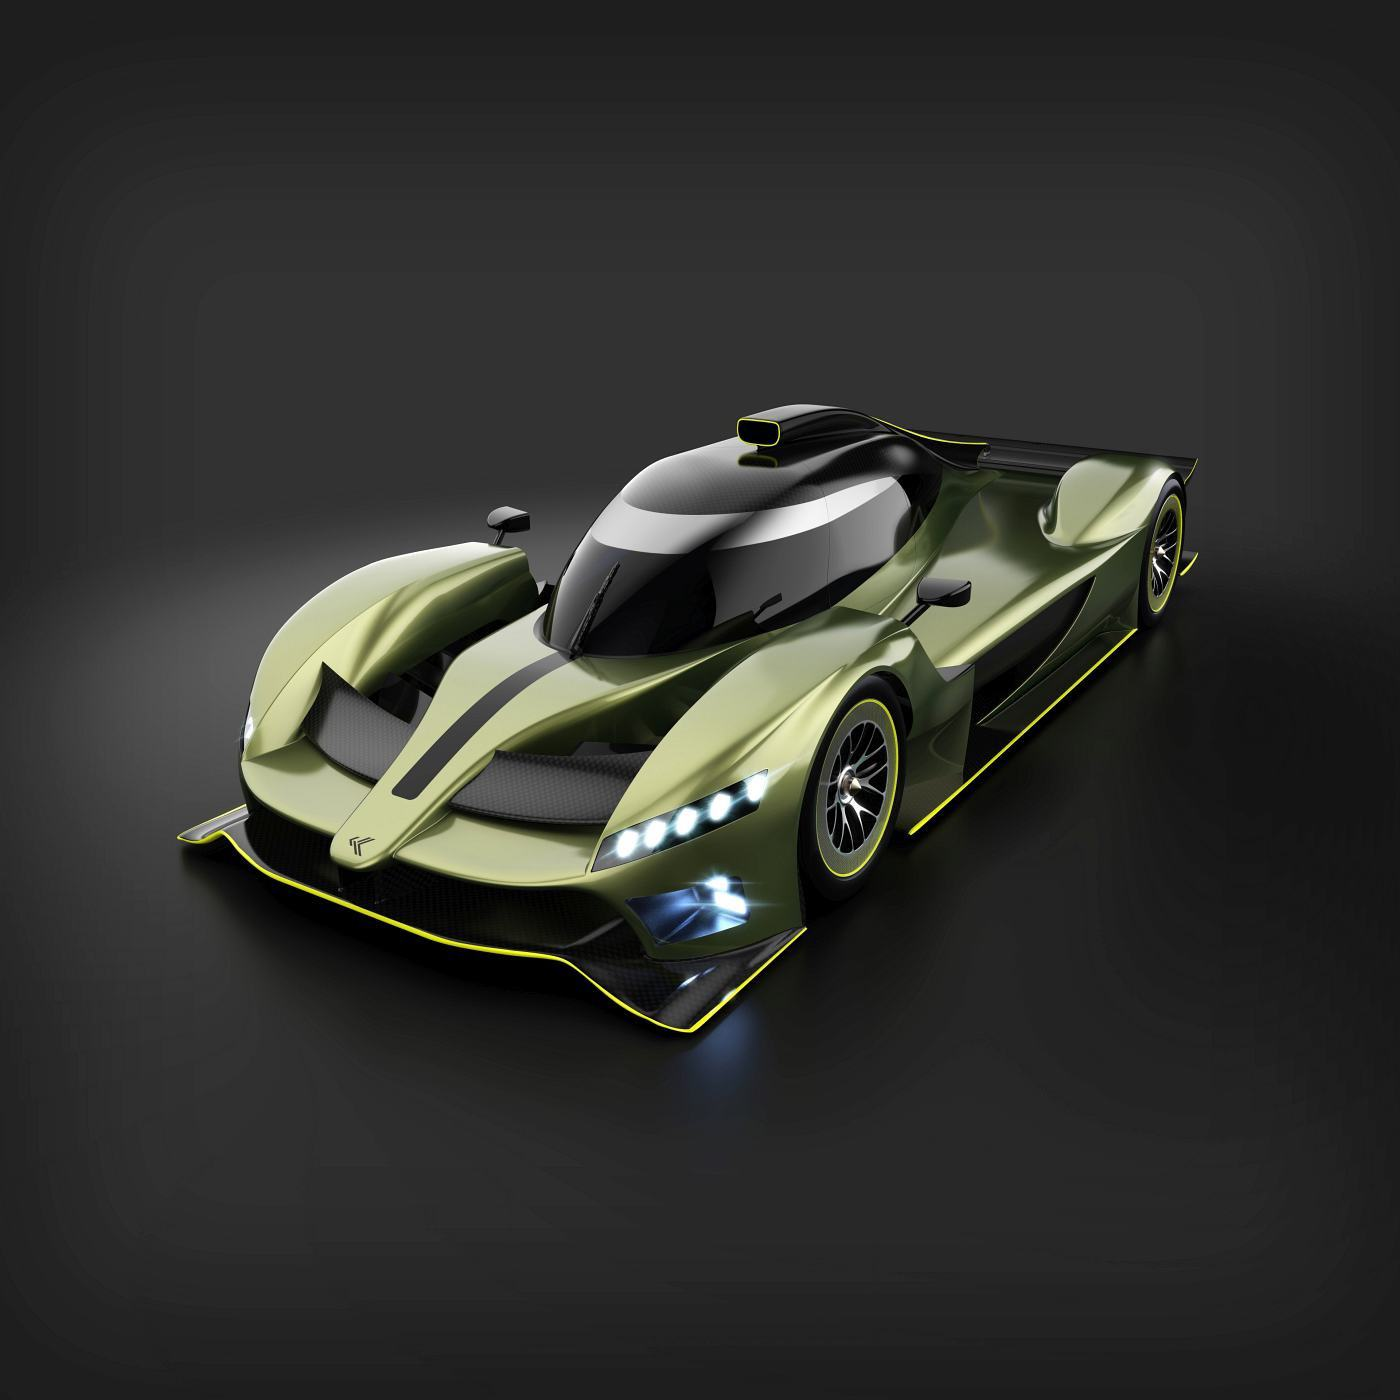 ByKOLLES-confirms-PMC-Project-LMH-for-2021-Roadcar-01